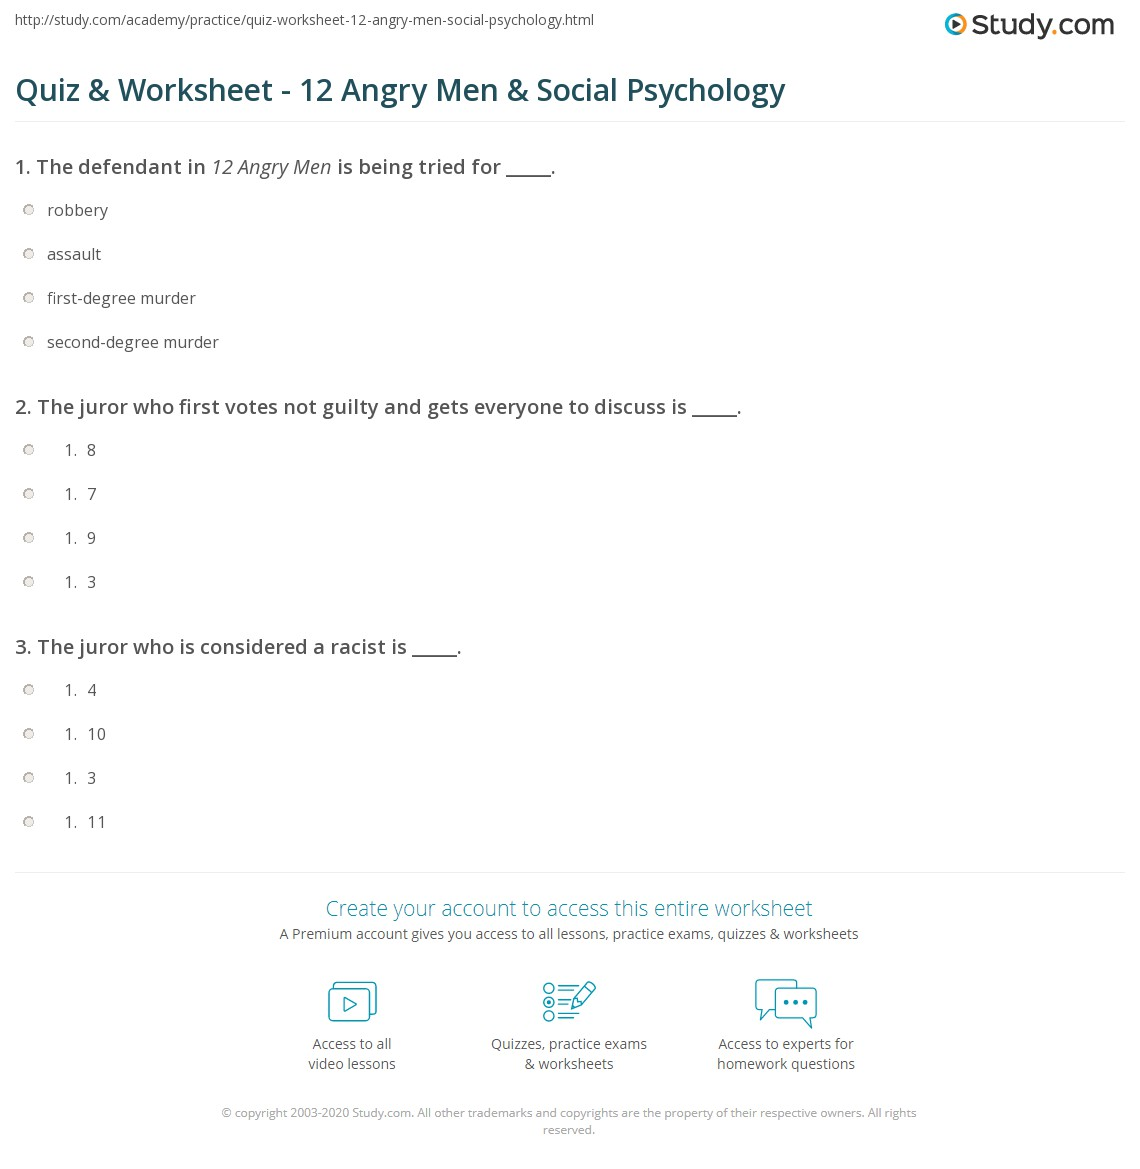 quiz worksheet angry men social psychology com print 12 angry men social psychology worksheet